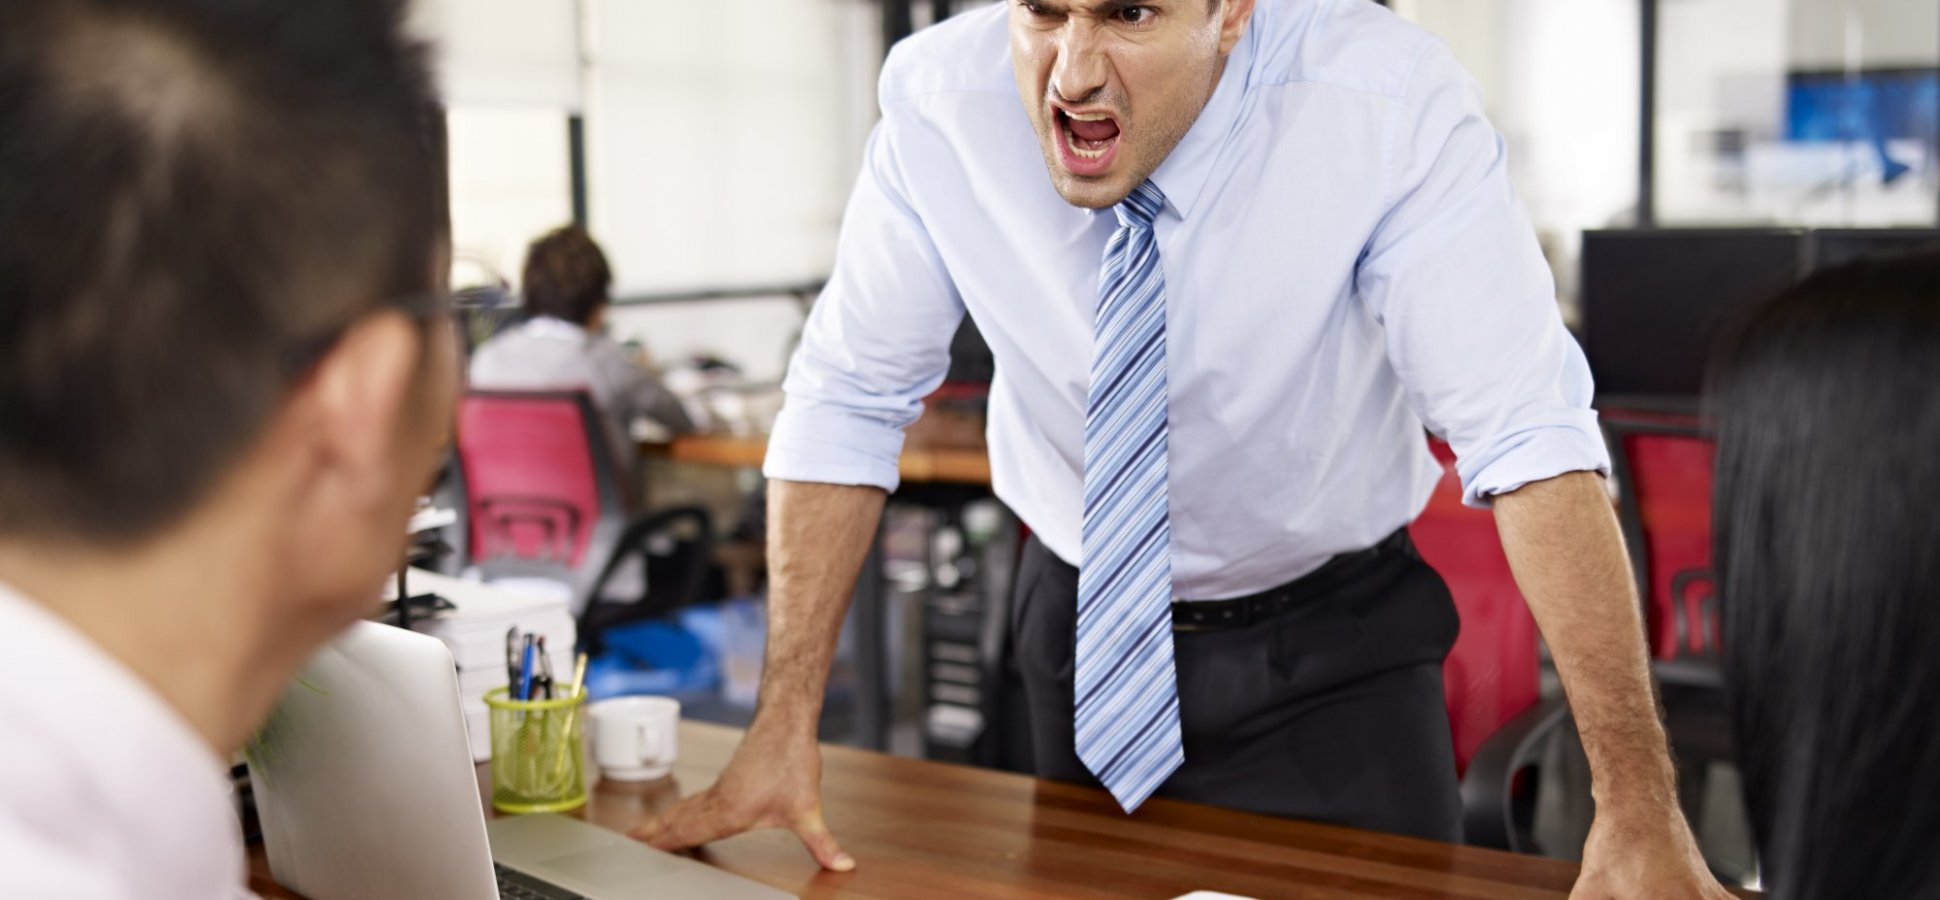 5 Ways Bad Bosses Demotivate People